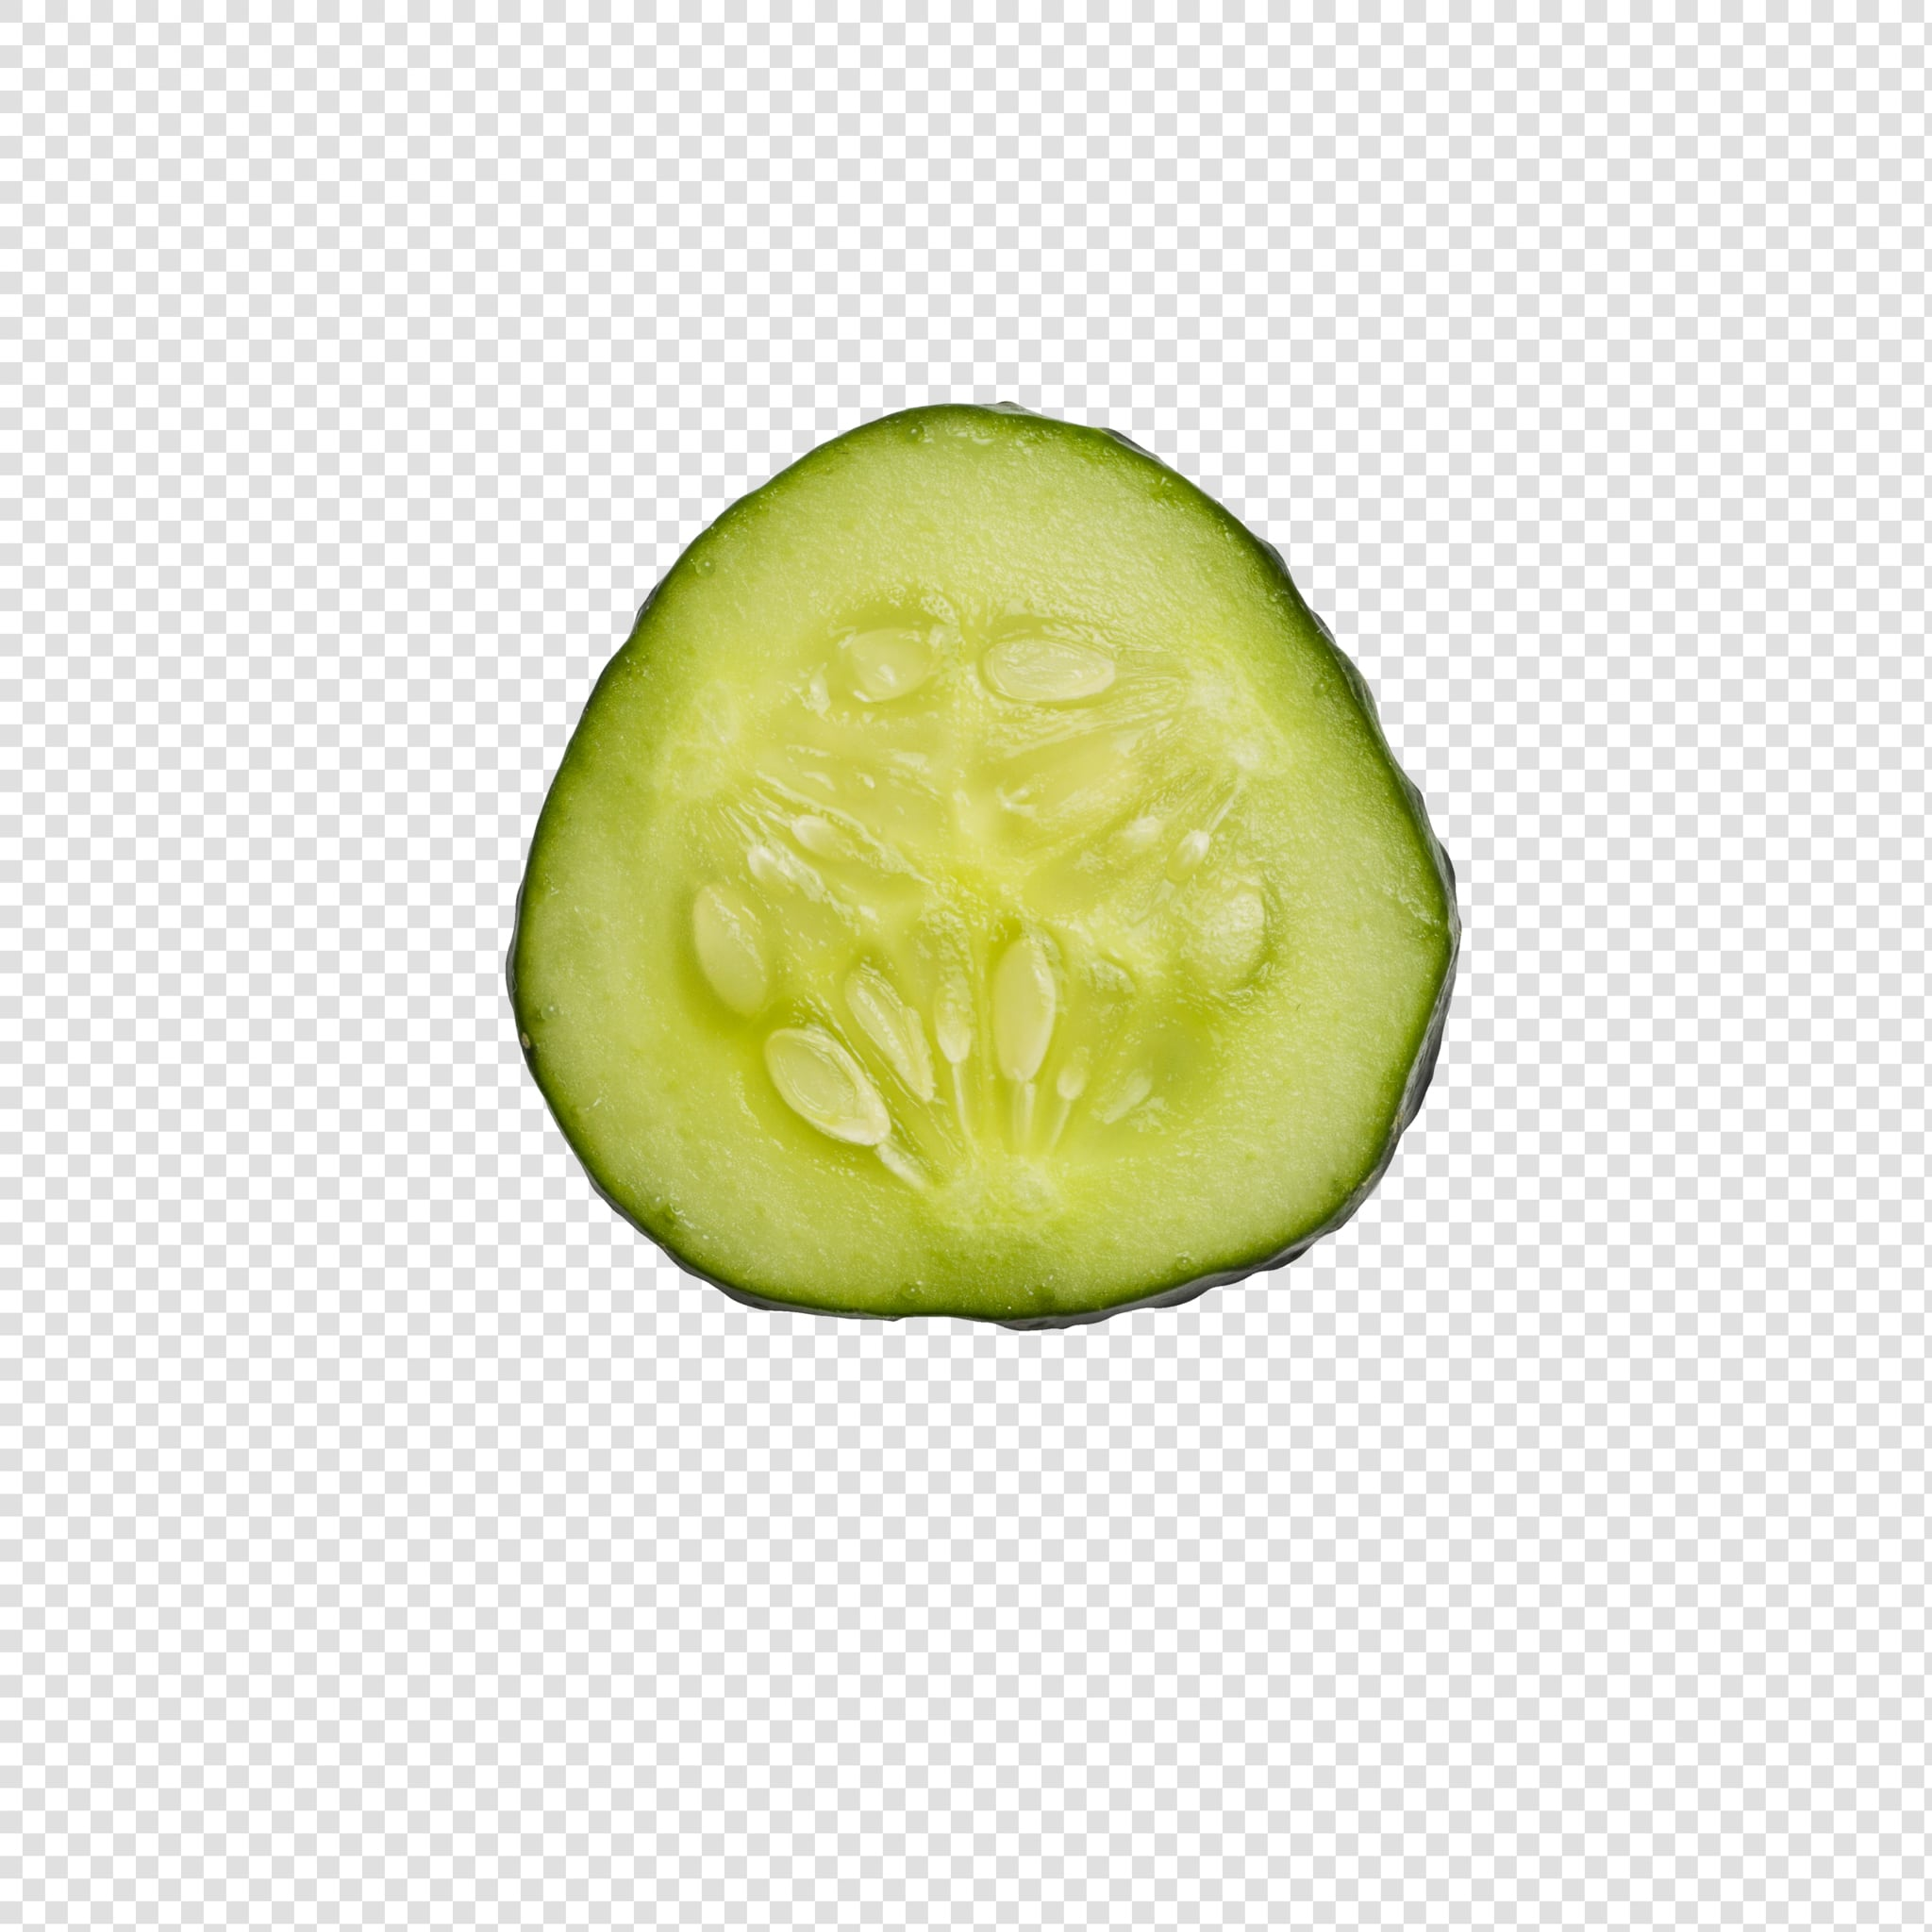 Cucumber image with transparent background